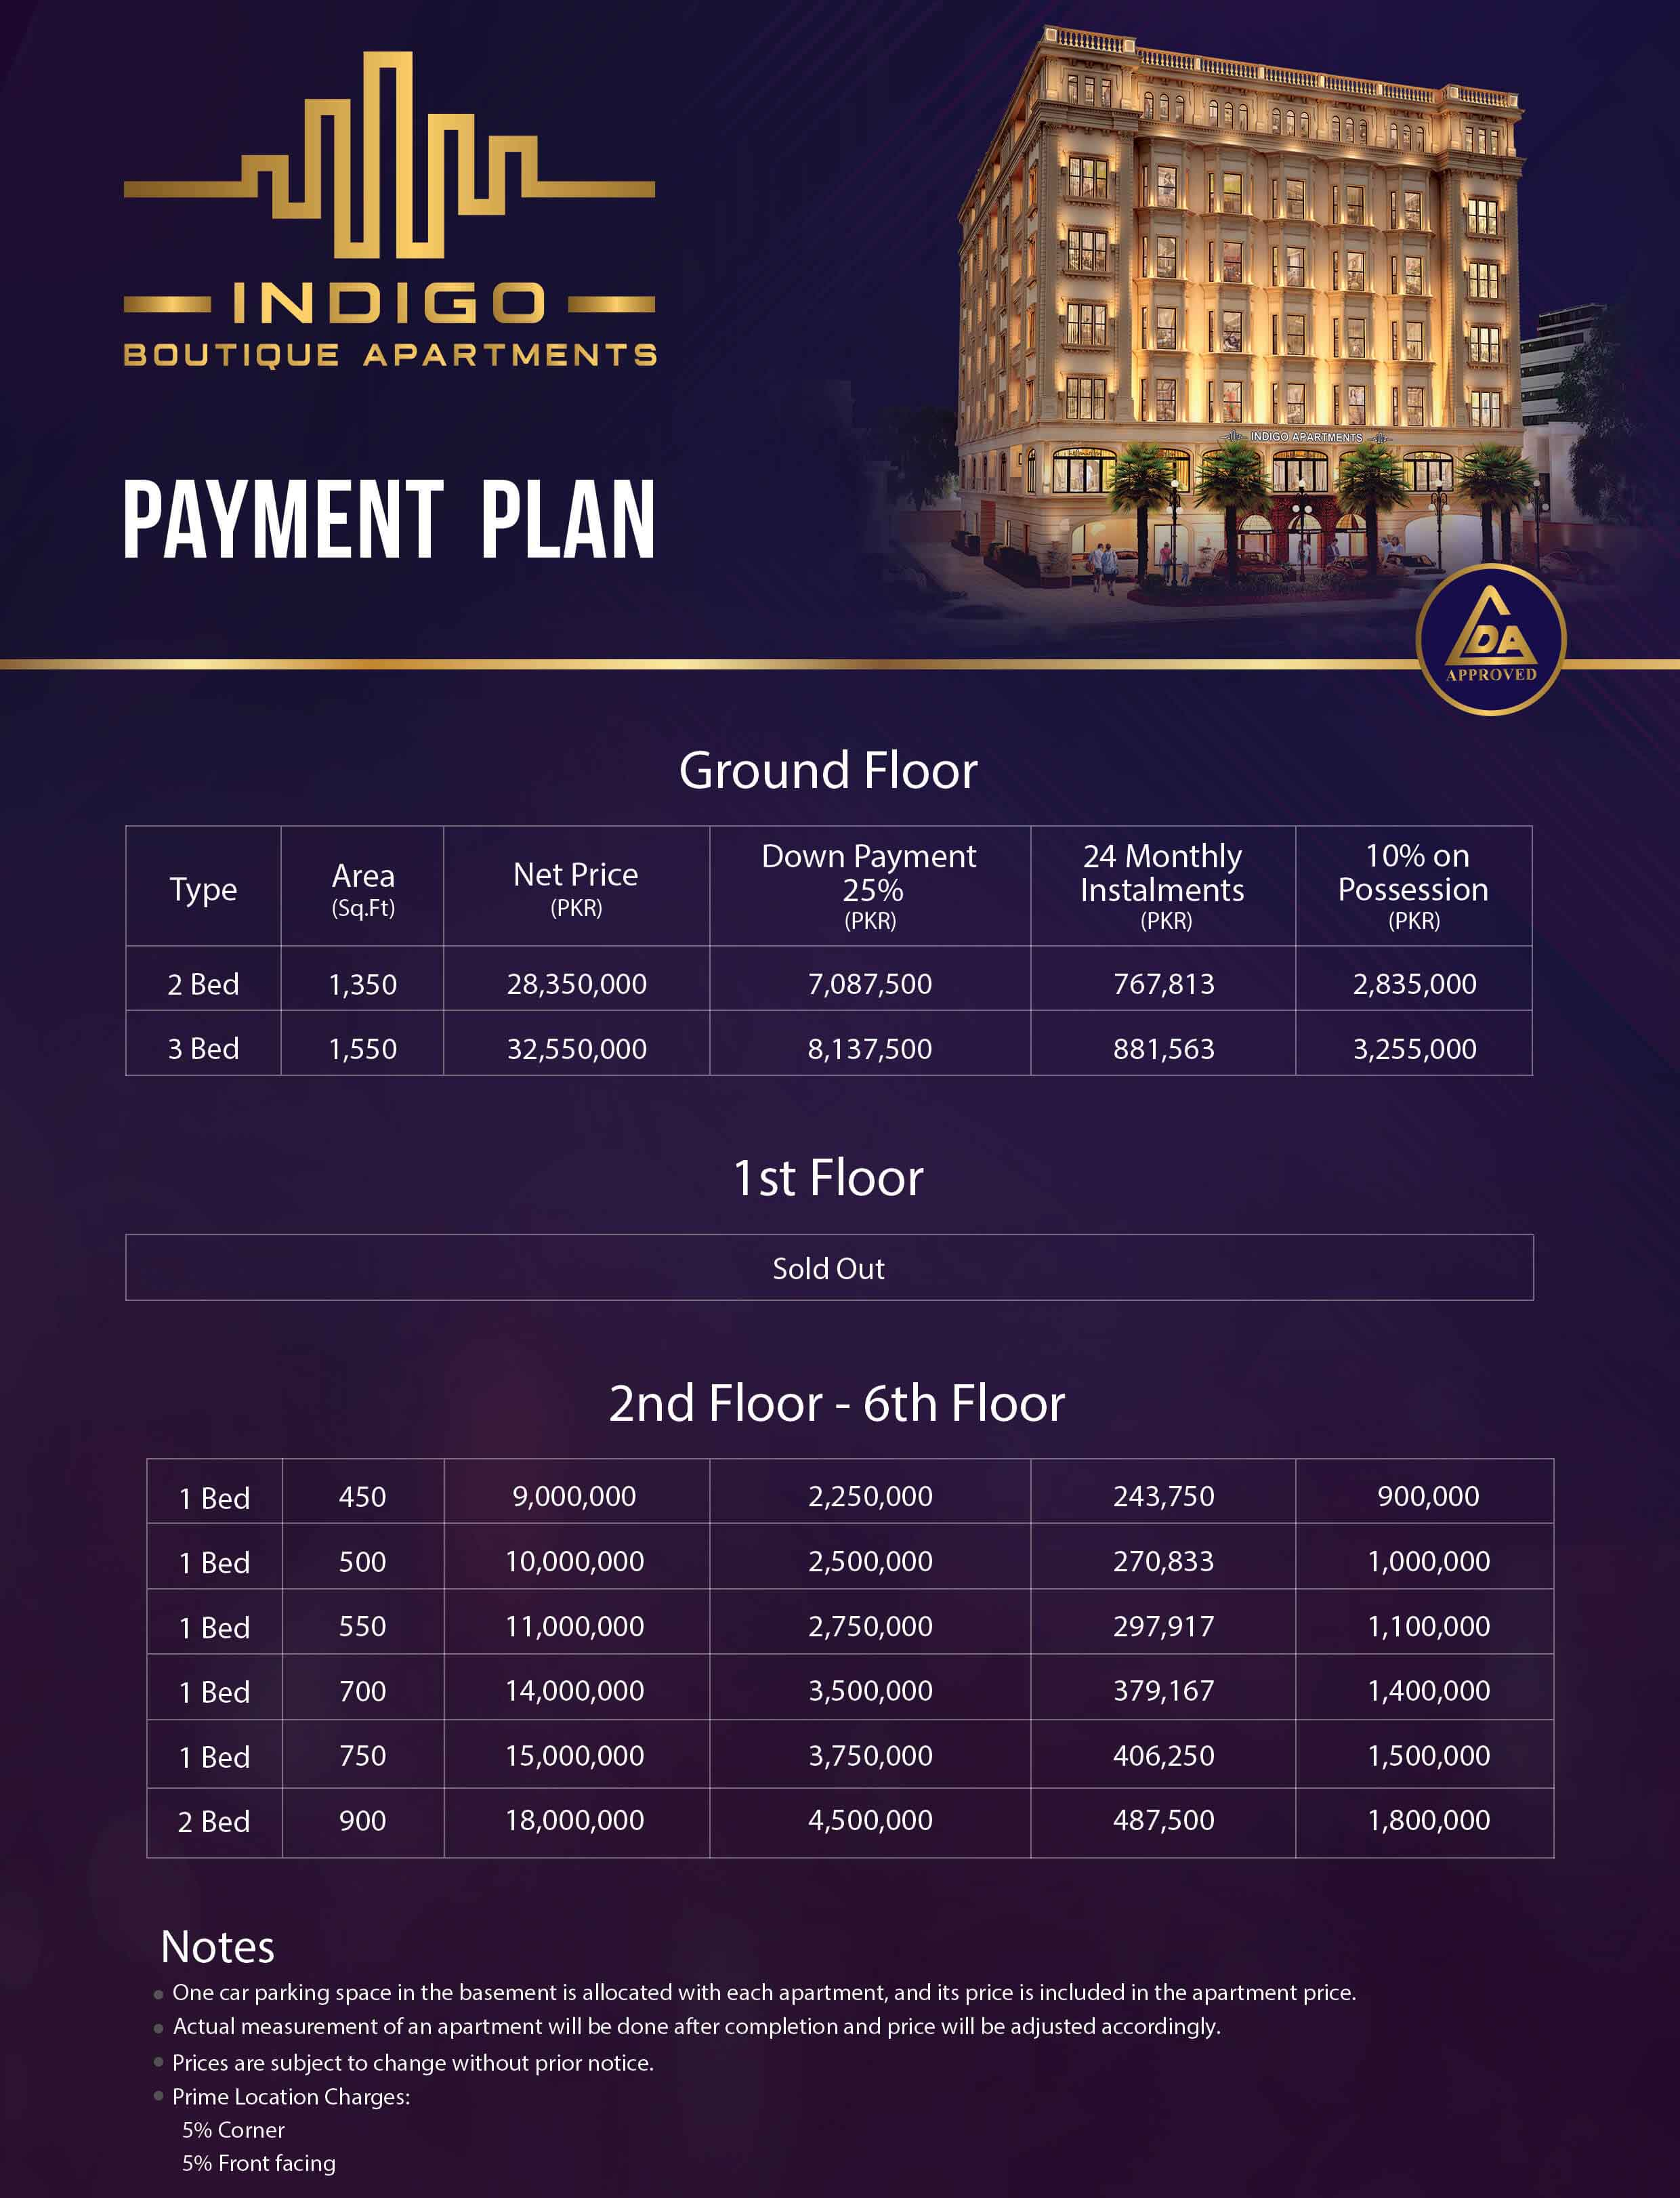 Indigo Boutique apartments Payment Plan